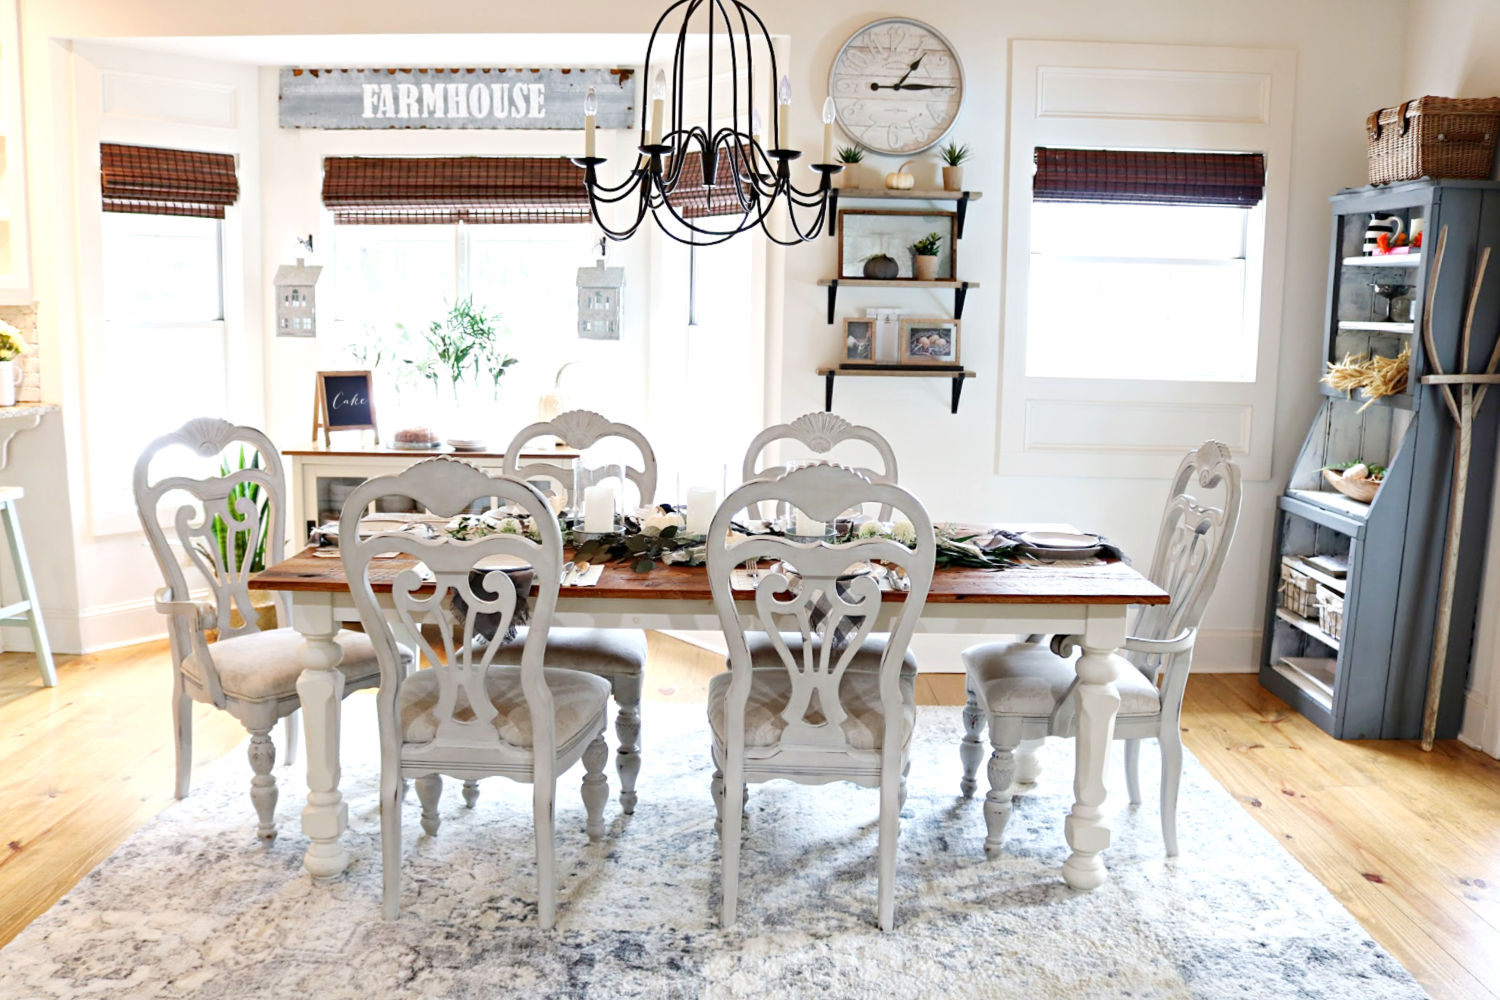 Farmhouse dining room refresh after